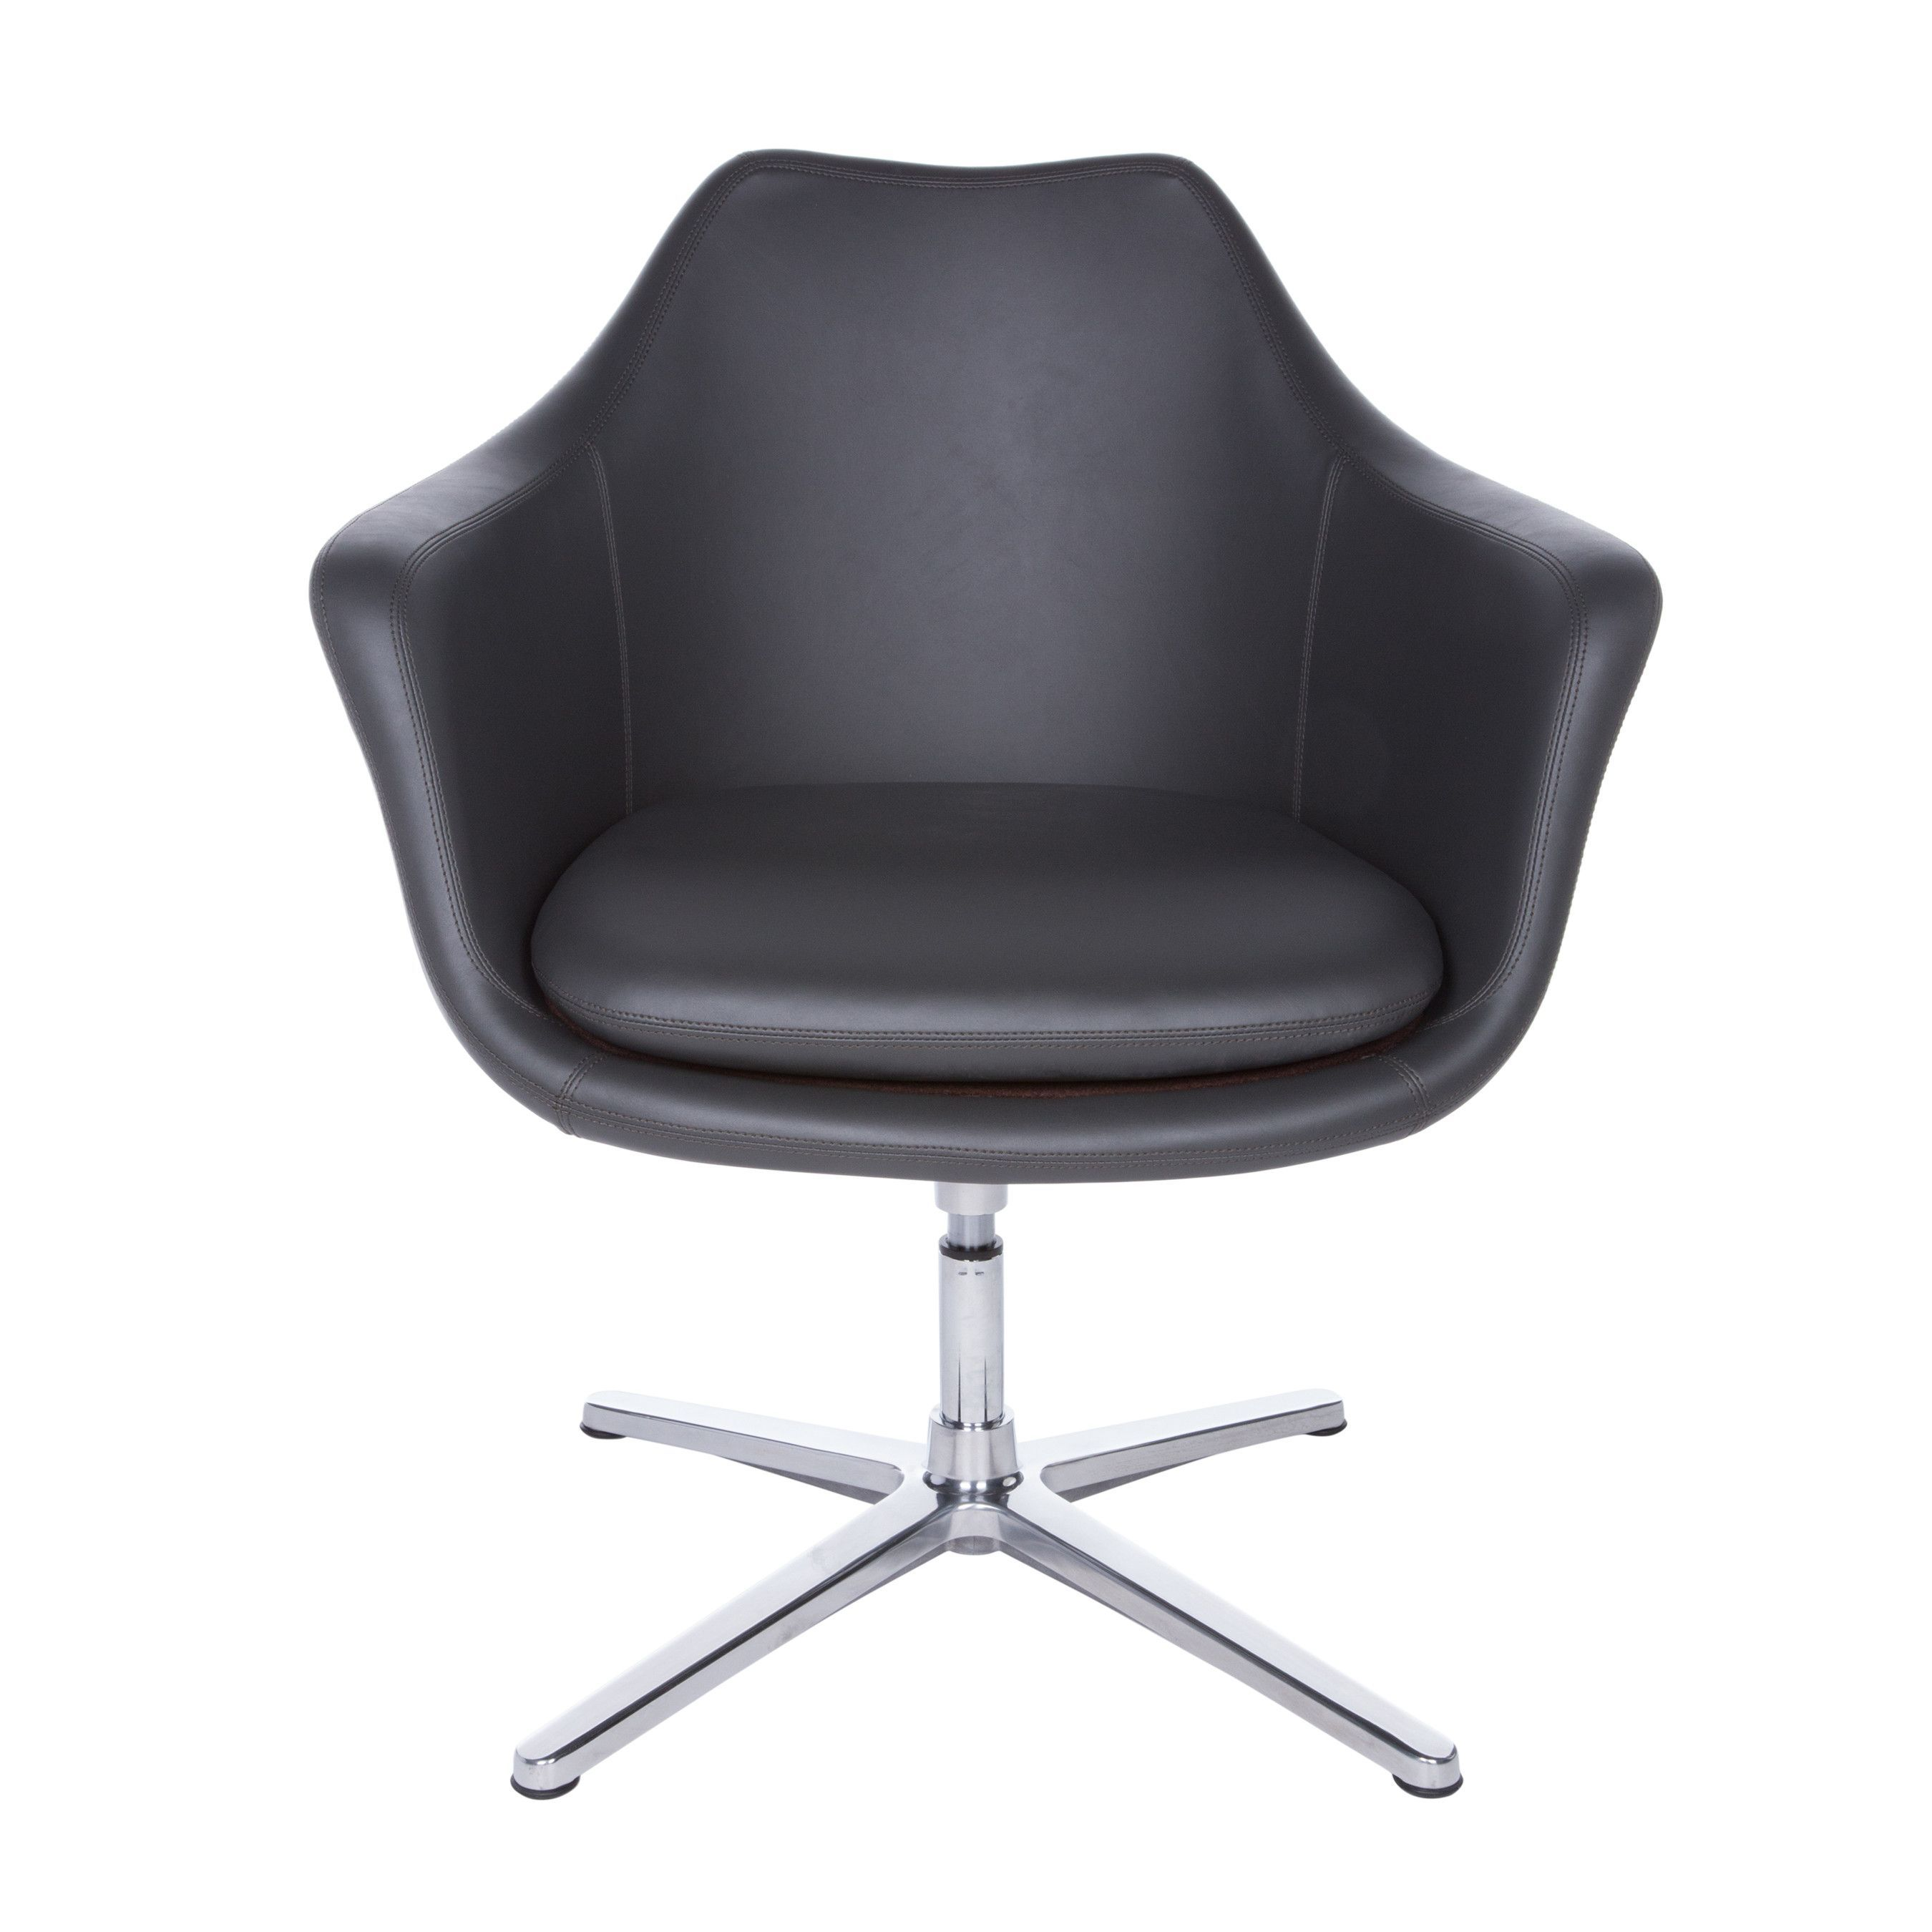 Giovana Lounge Chair In Dark Gray And Polished Aluminum